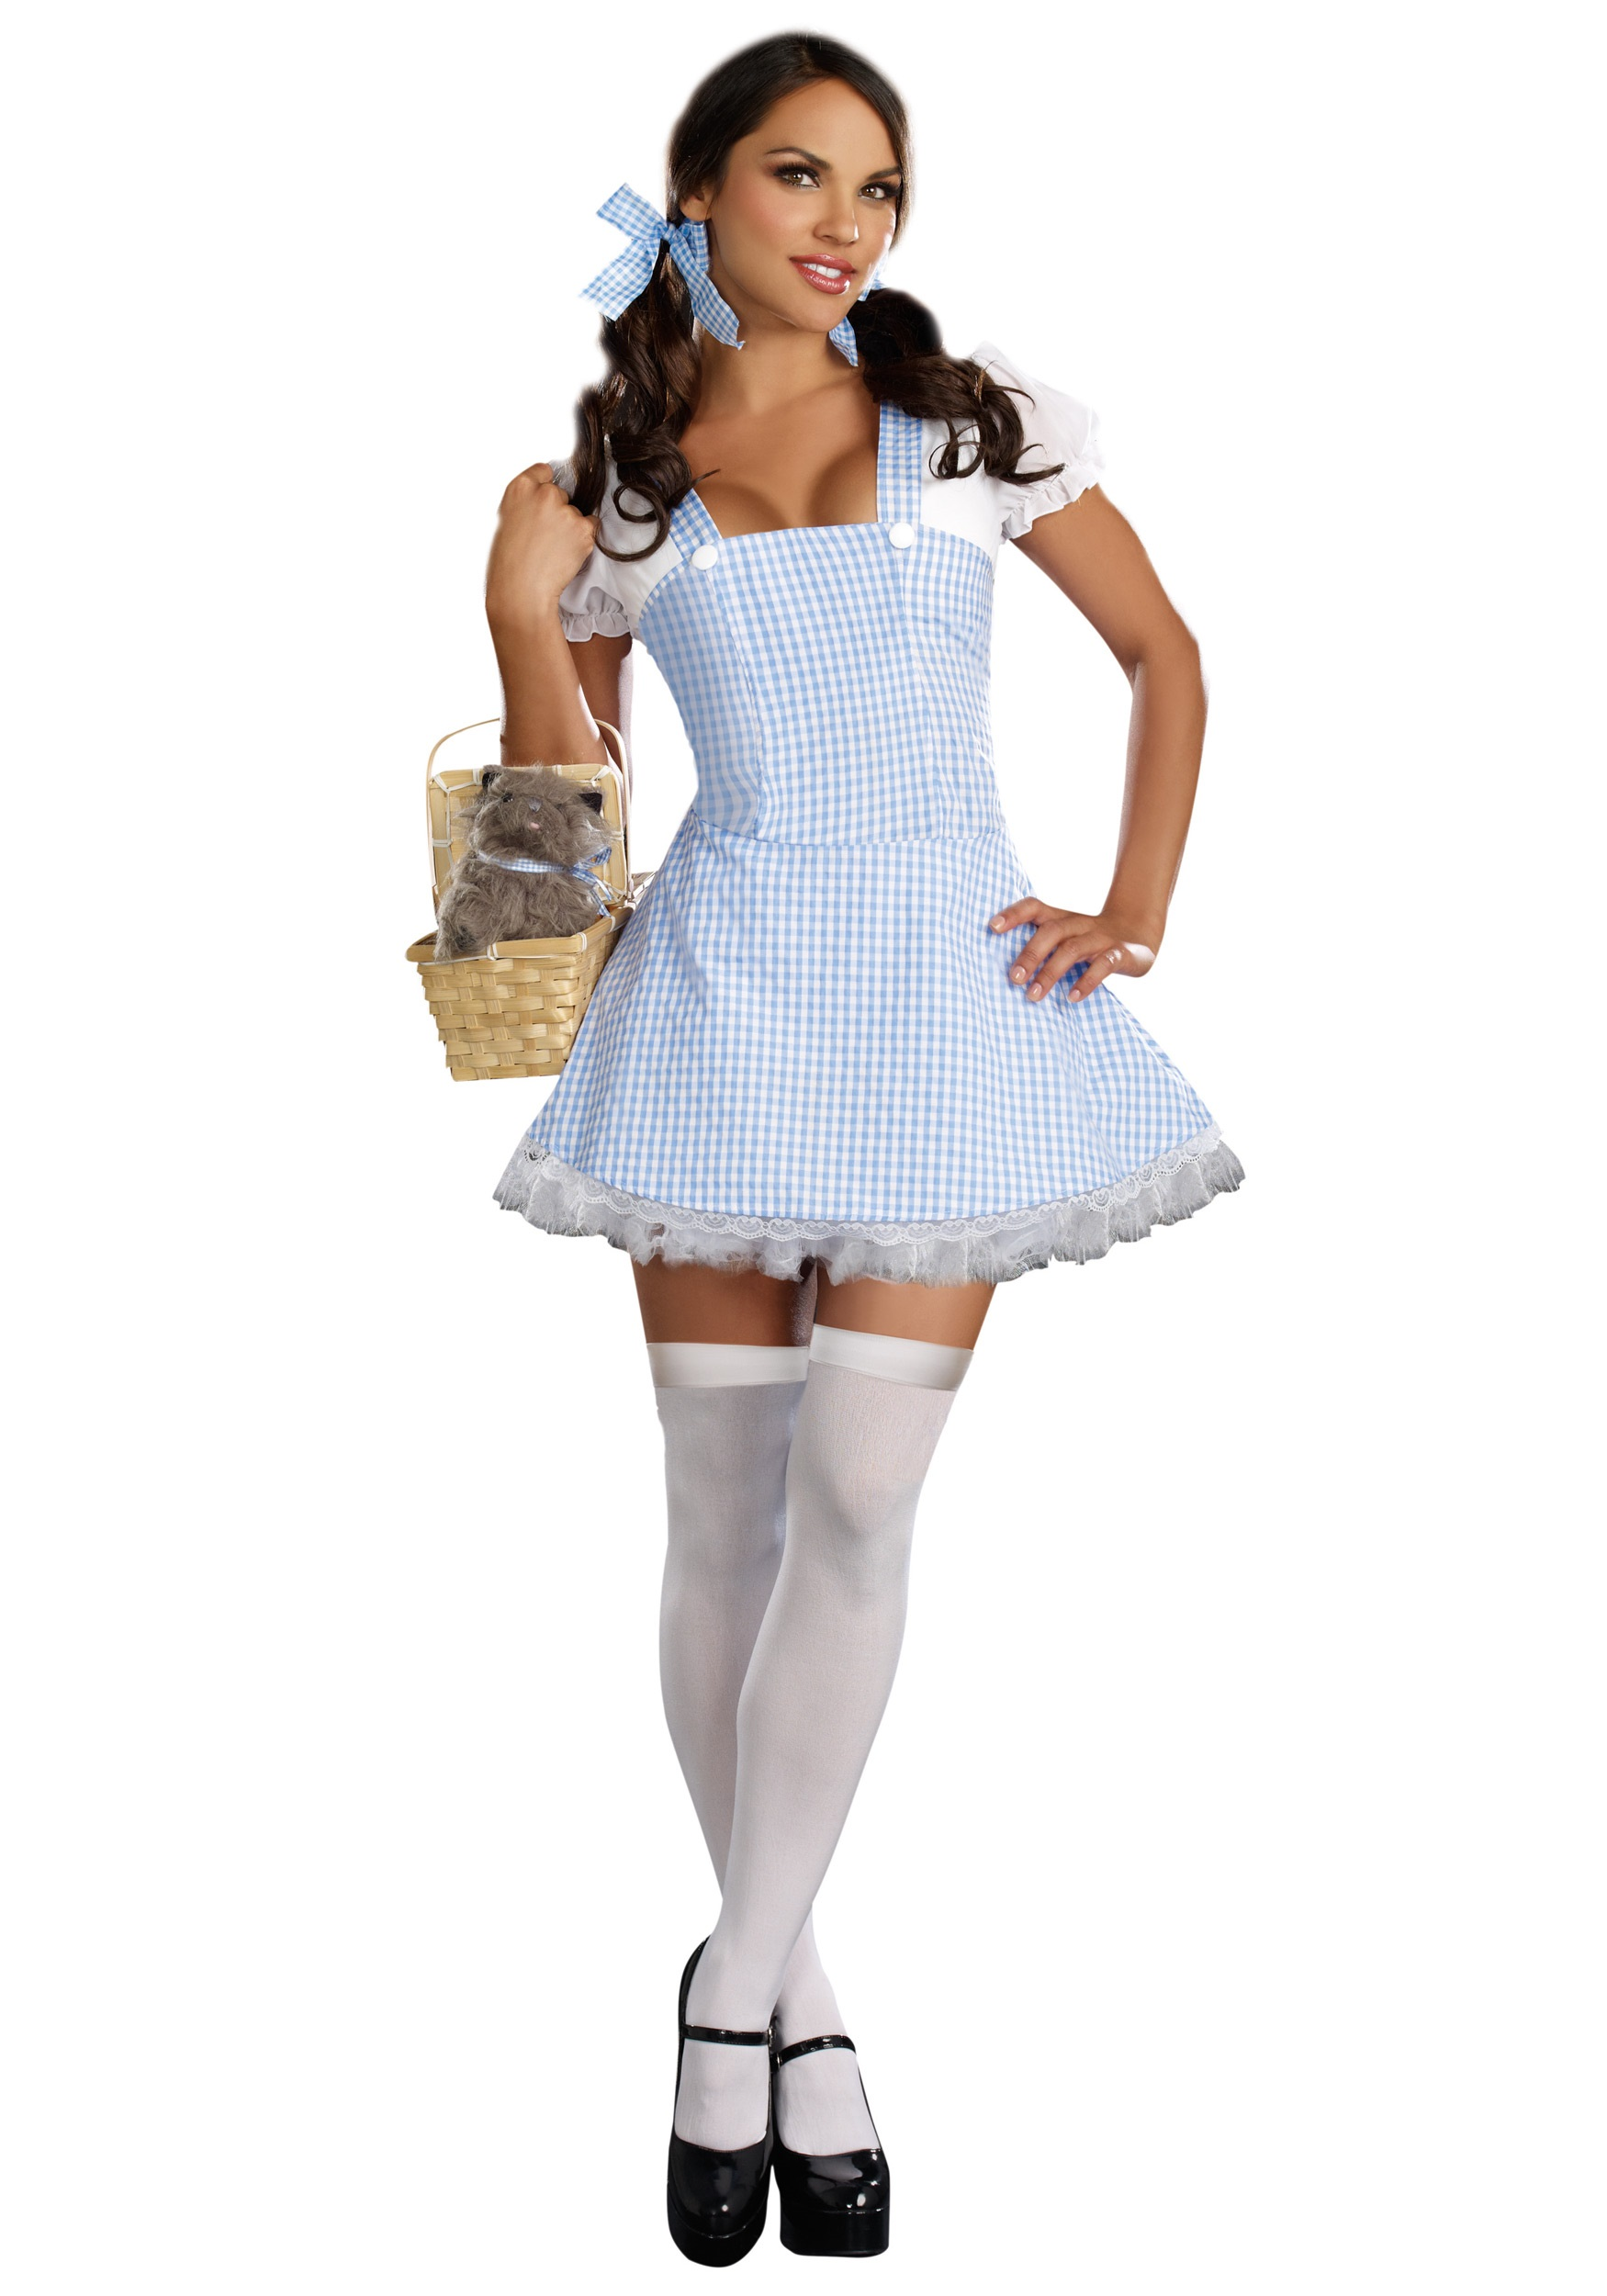 Blue Gingham Dress Costume   Sexy Country Dress   Sexy Costume